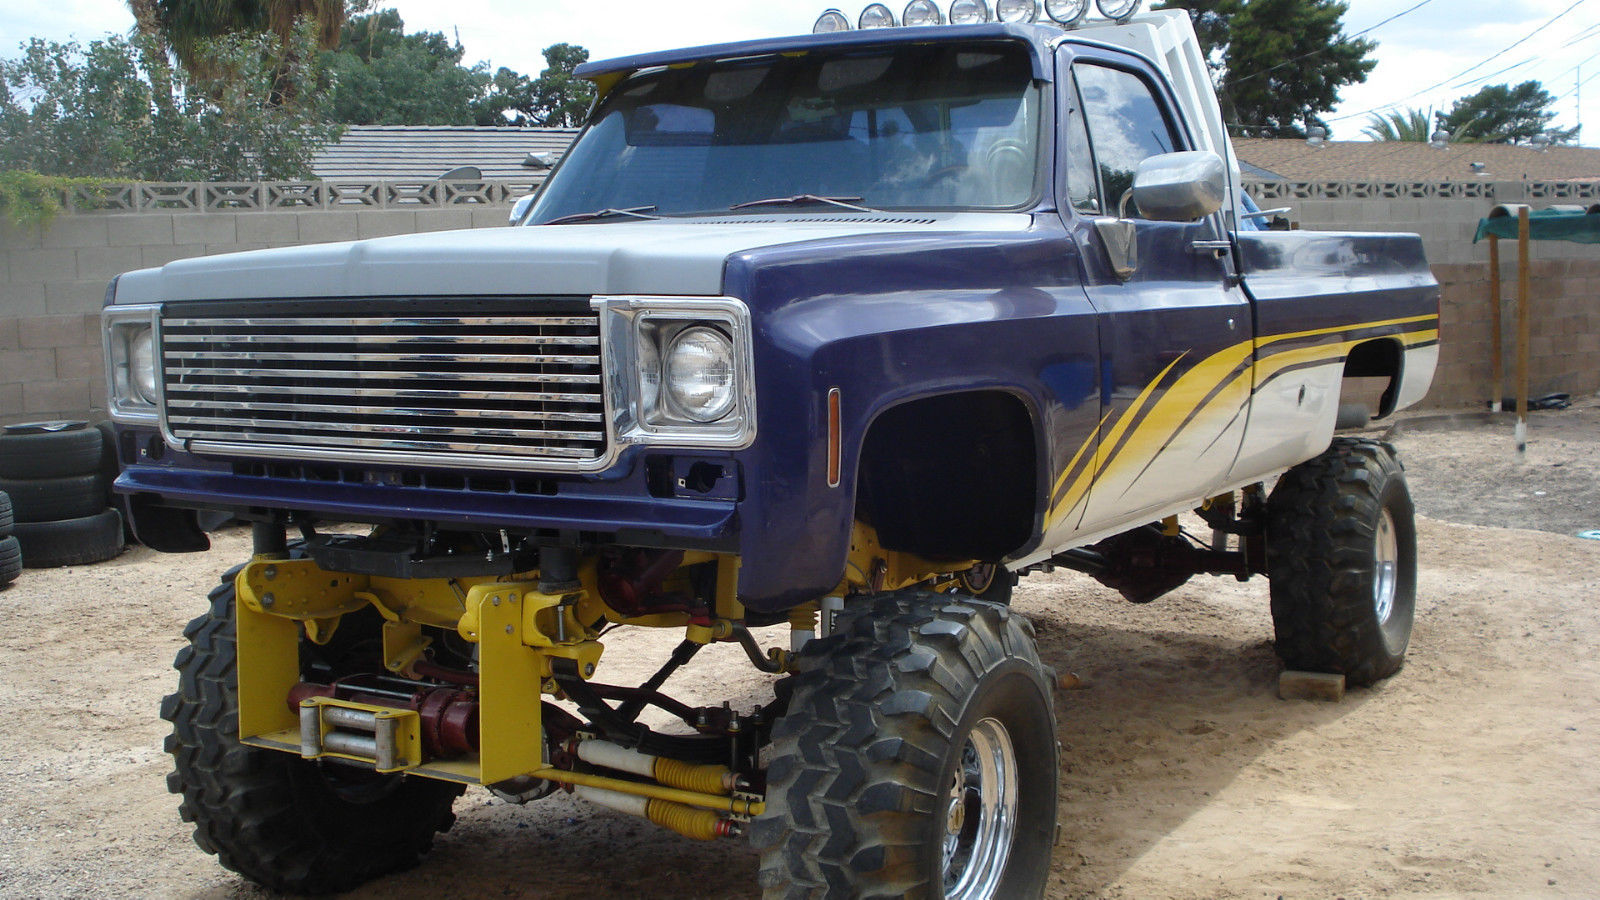 Van Chevrolet Scottsdale >> Roll bar 1978 Chevrolet Pickup monster truck for sale